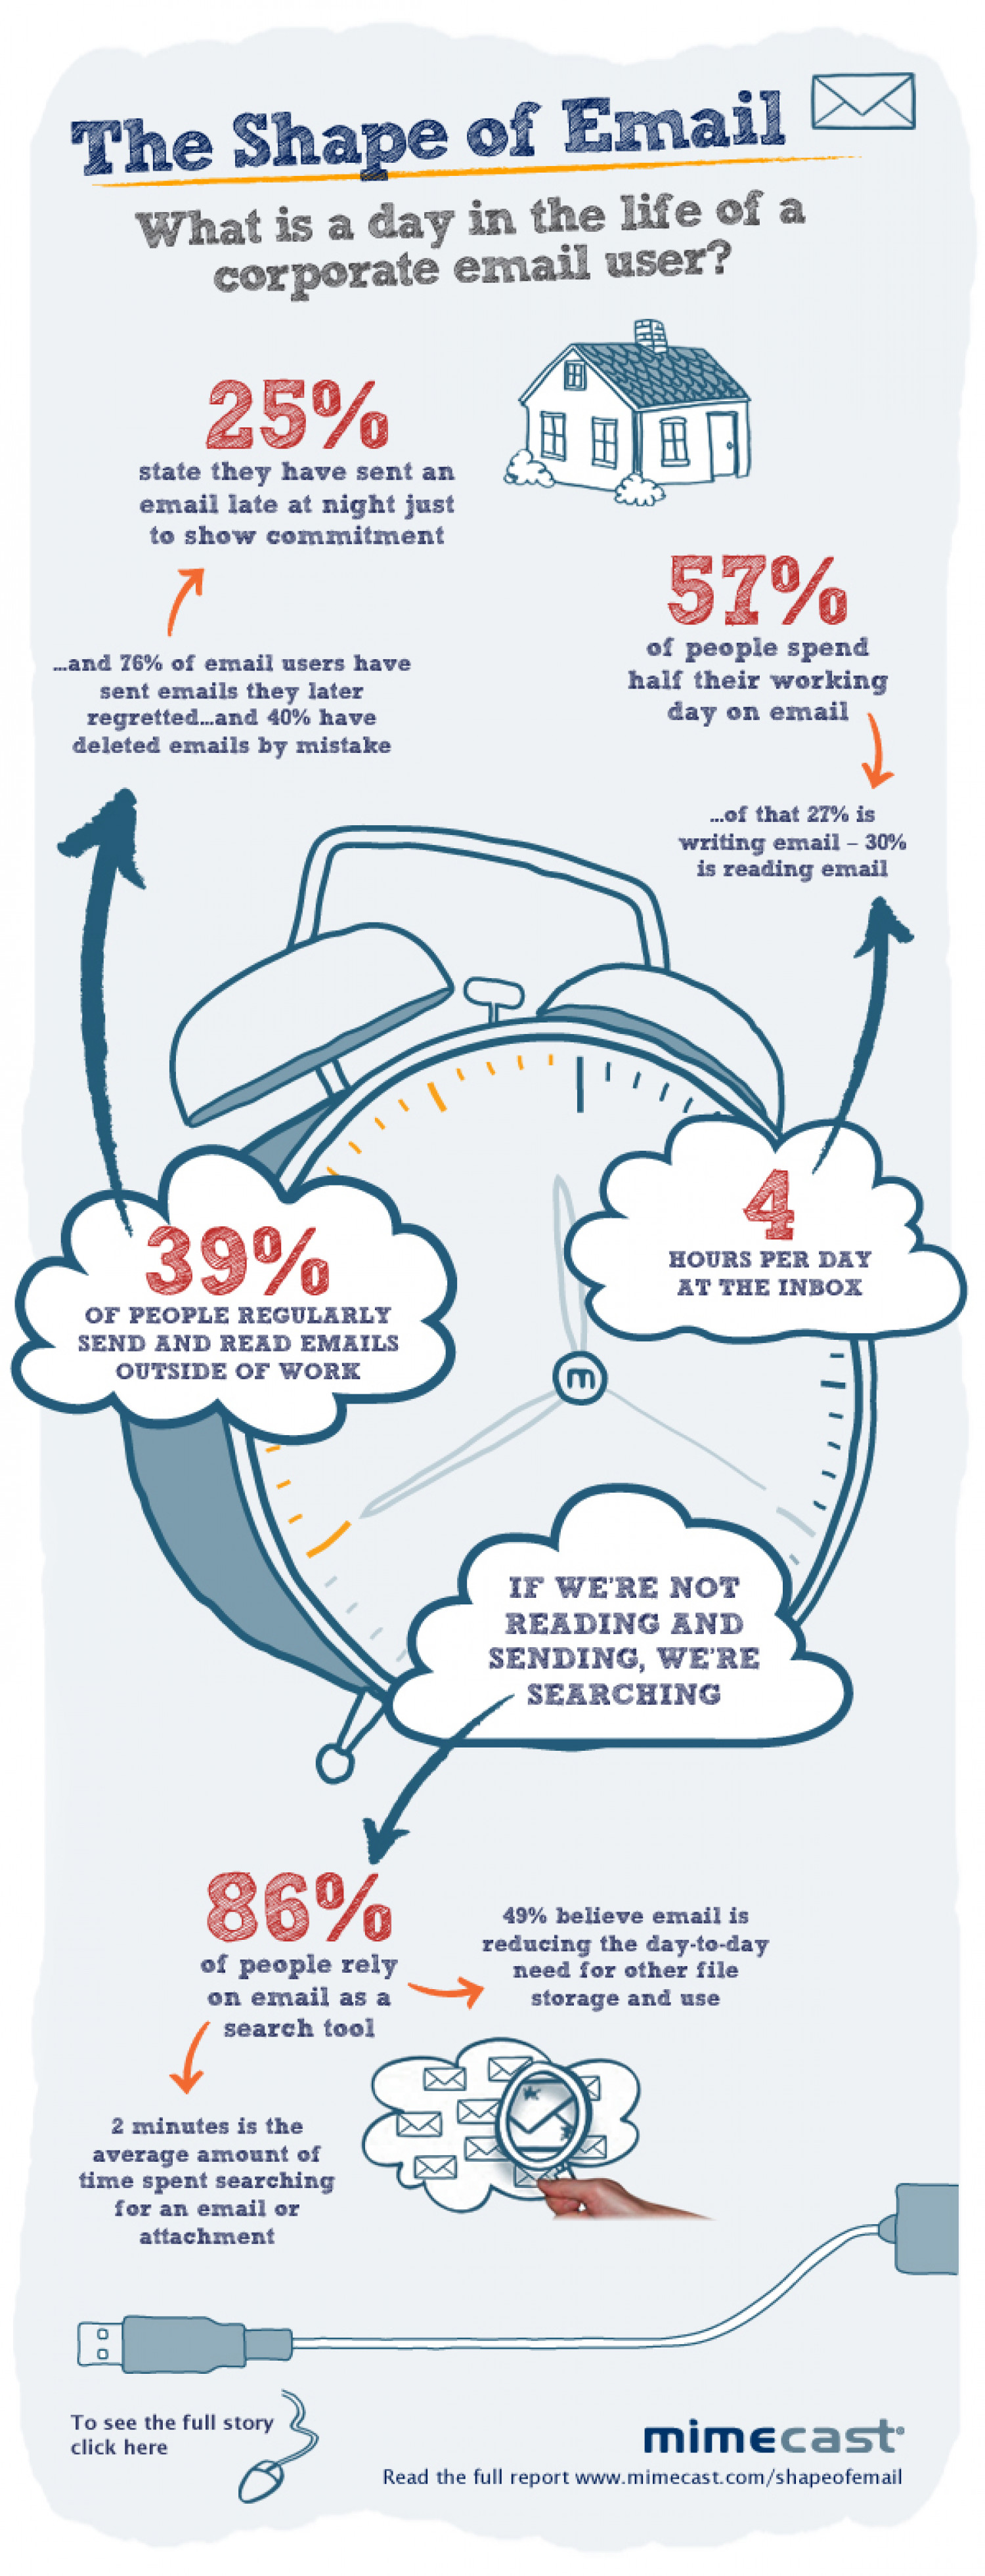 The Shape Of Email - What Do End Users Think? Infographic